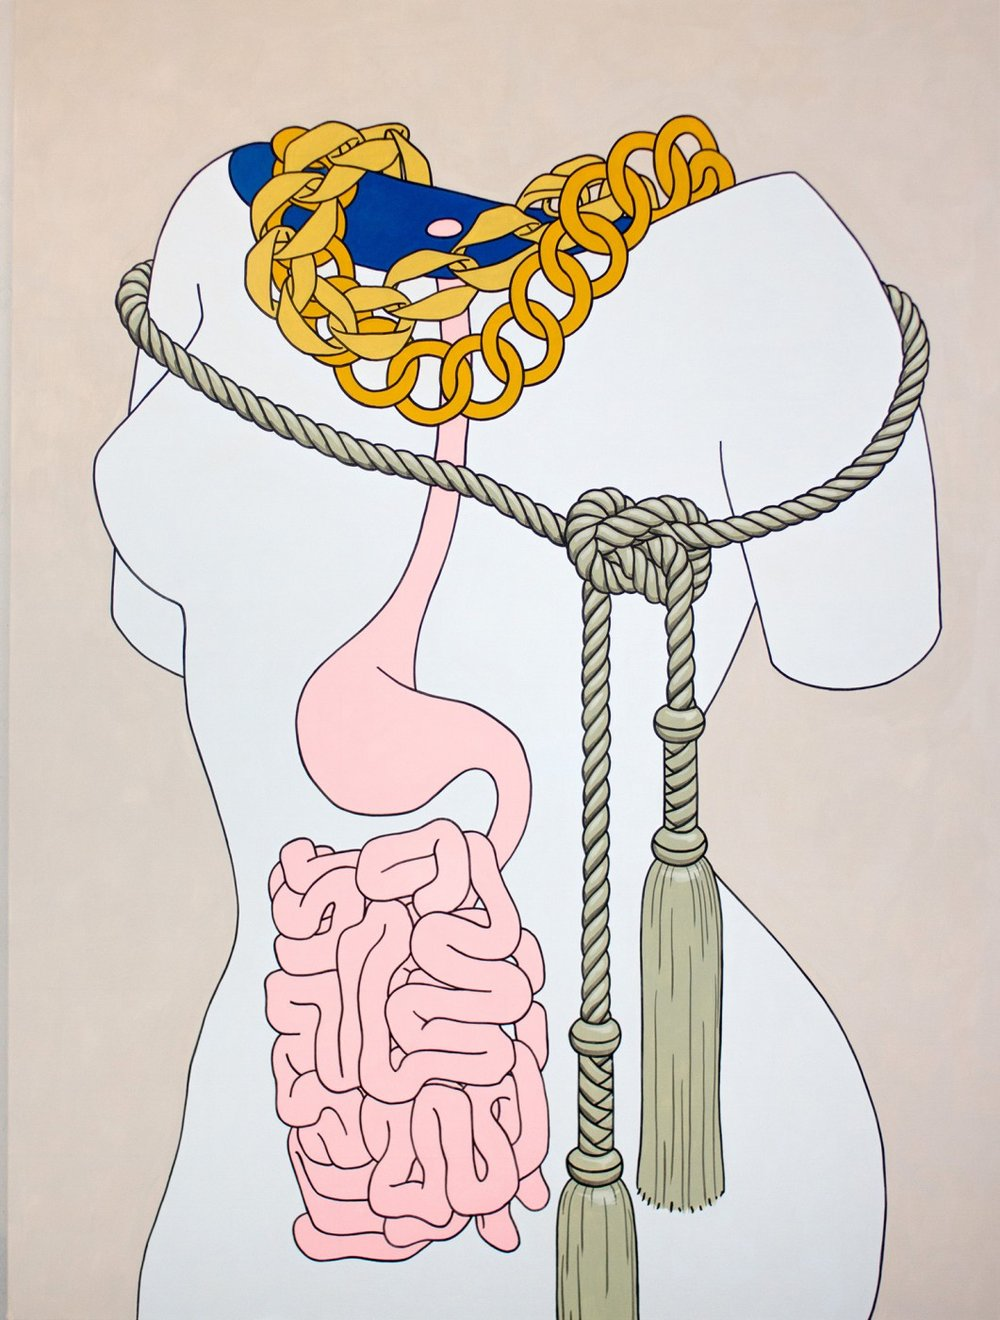 Caitlin Keogh,  Intestine and Tassels , 2015, Acrylic on canvas, 84 x 63 in / 213.4 x 160cm.  http://bortolamigallery.com/artist/caitlin-keogh/works/